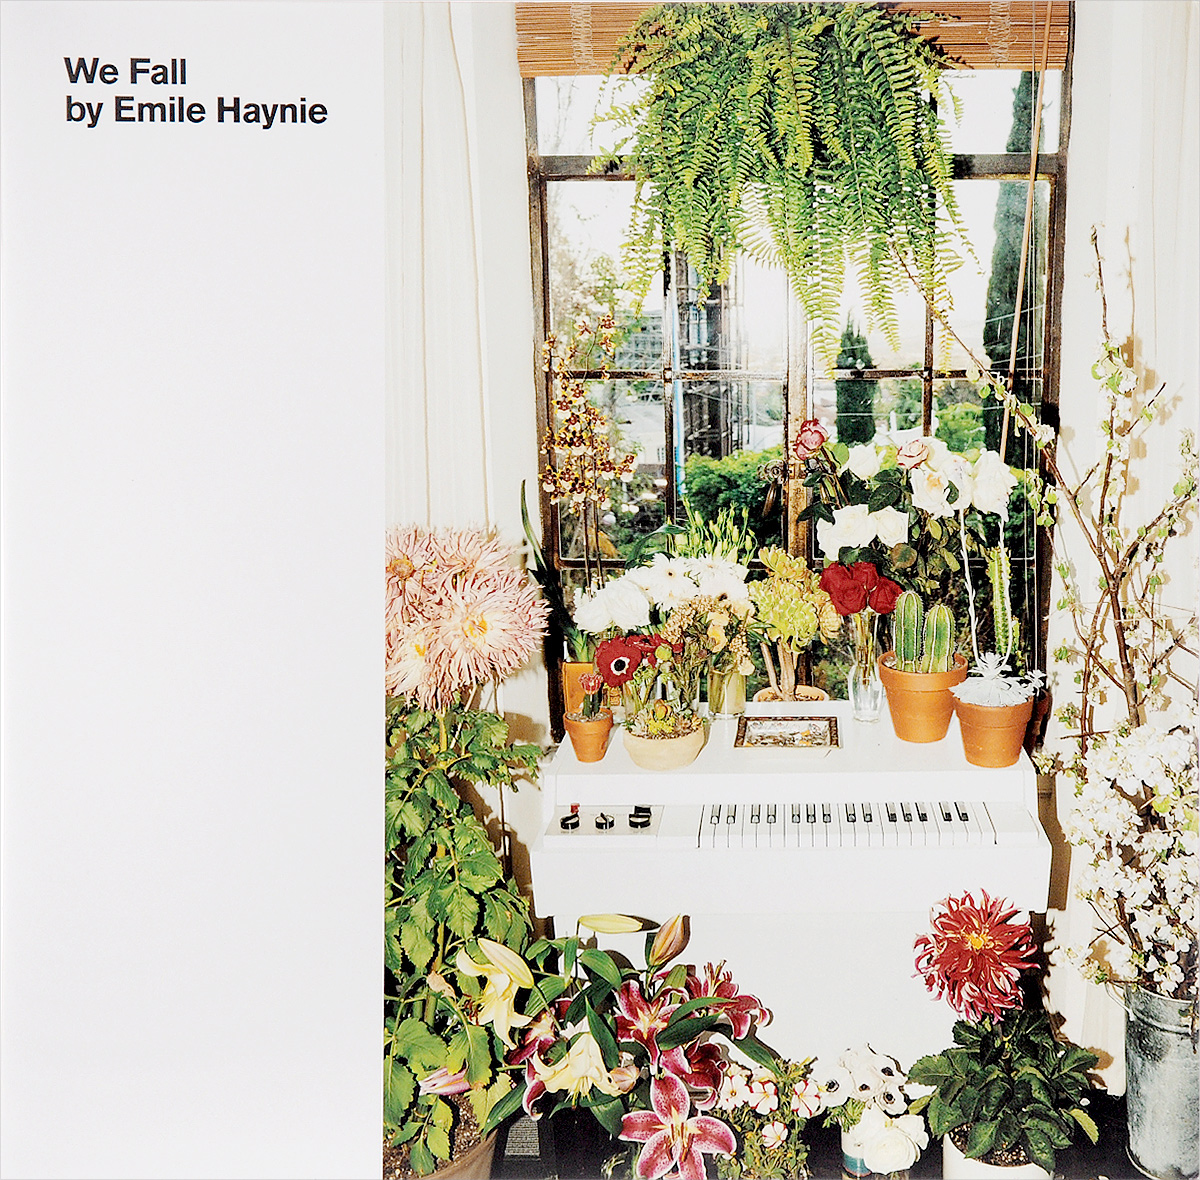 Эмиль Хейни Emile Haynie. We Fall By Emile Haynie (LP) эмиль хейни emile haynie we fall by emile haynie